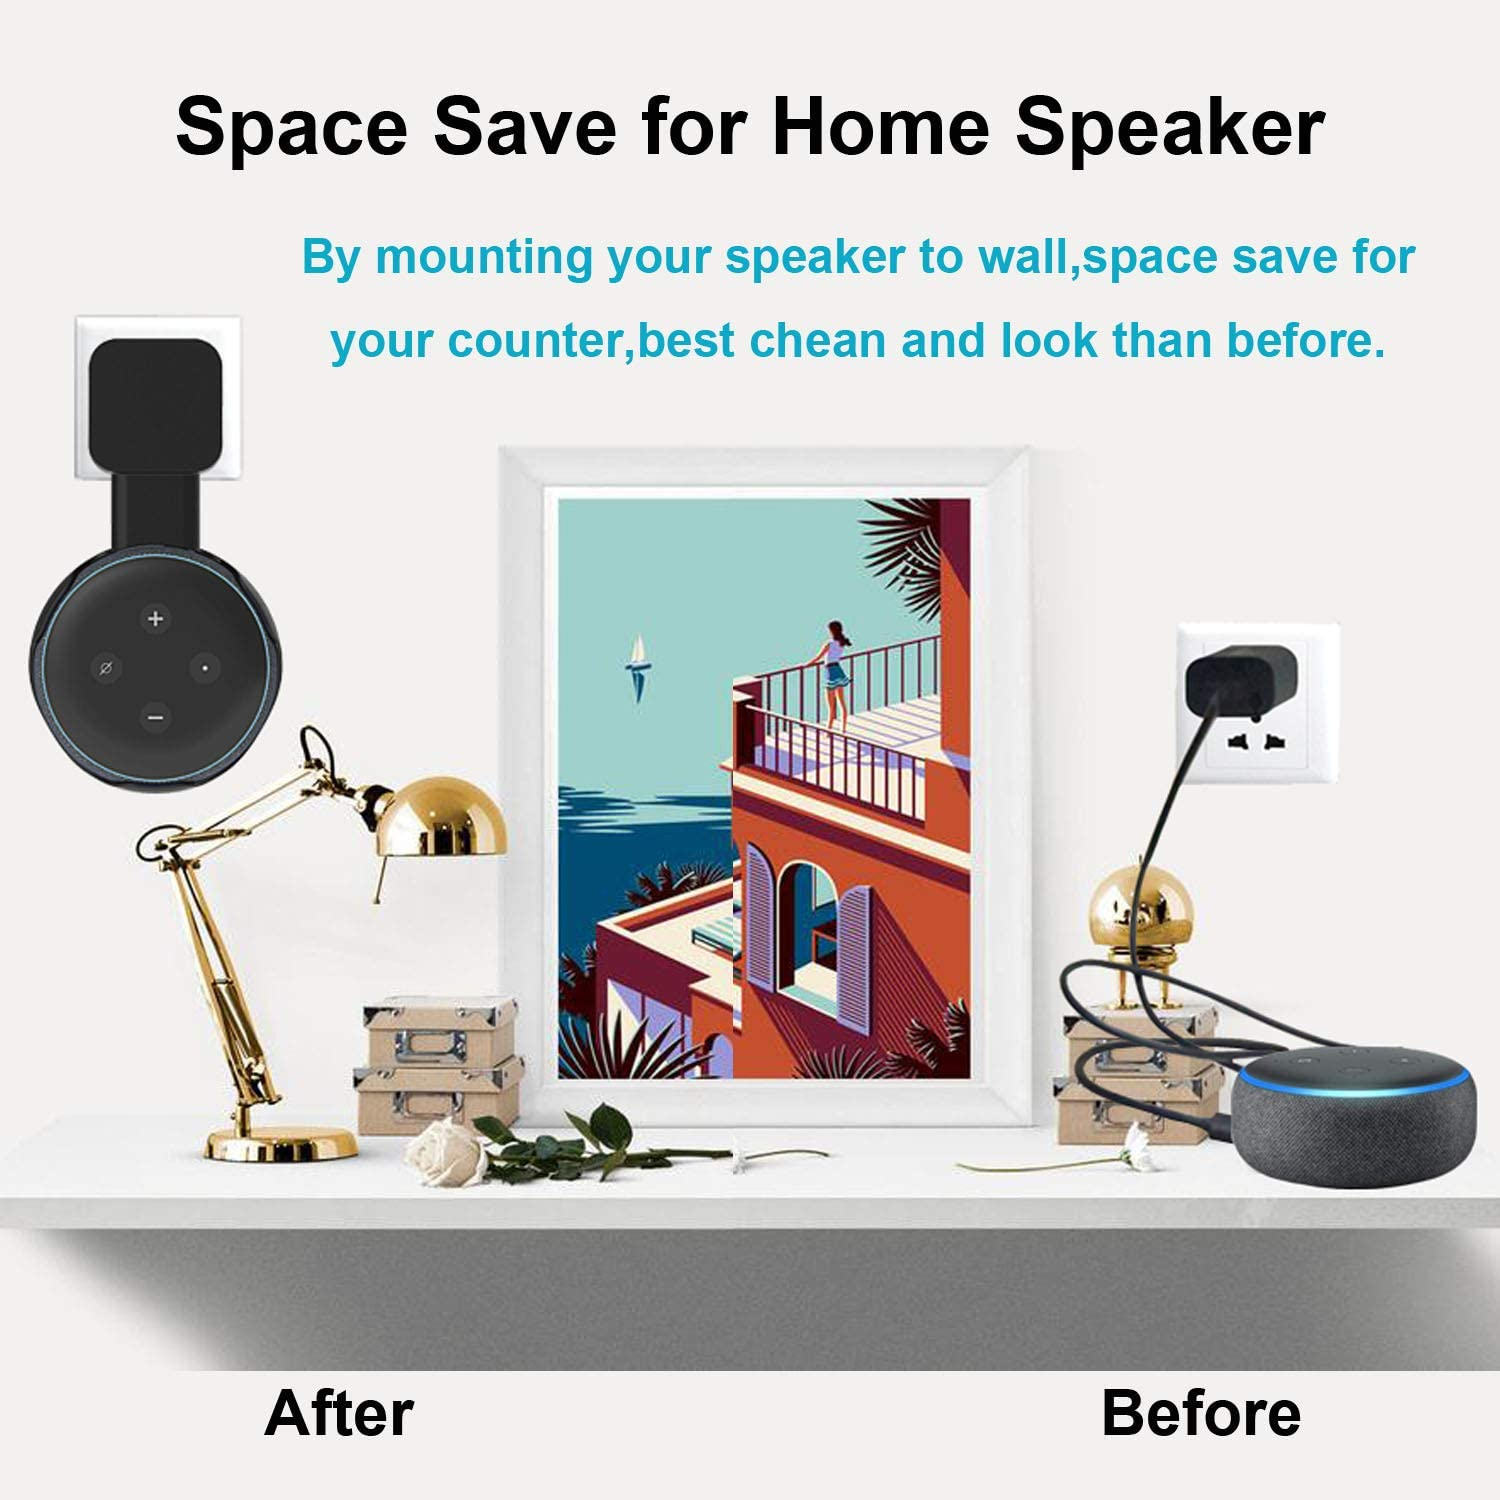 Space Save Accessories Hanger Bracket Case 3rd Gen MTSmart Outlet Wall Mount Holder Stand for Smart Home Speaker Black, 1 Clever Hide Both Adapter and Wires Screwless